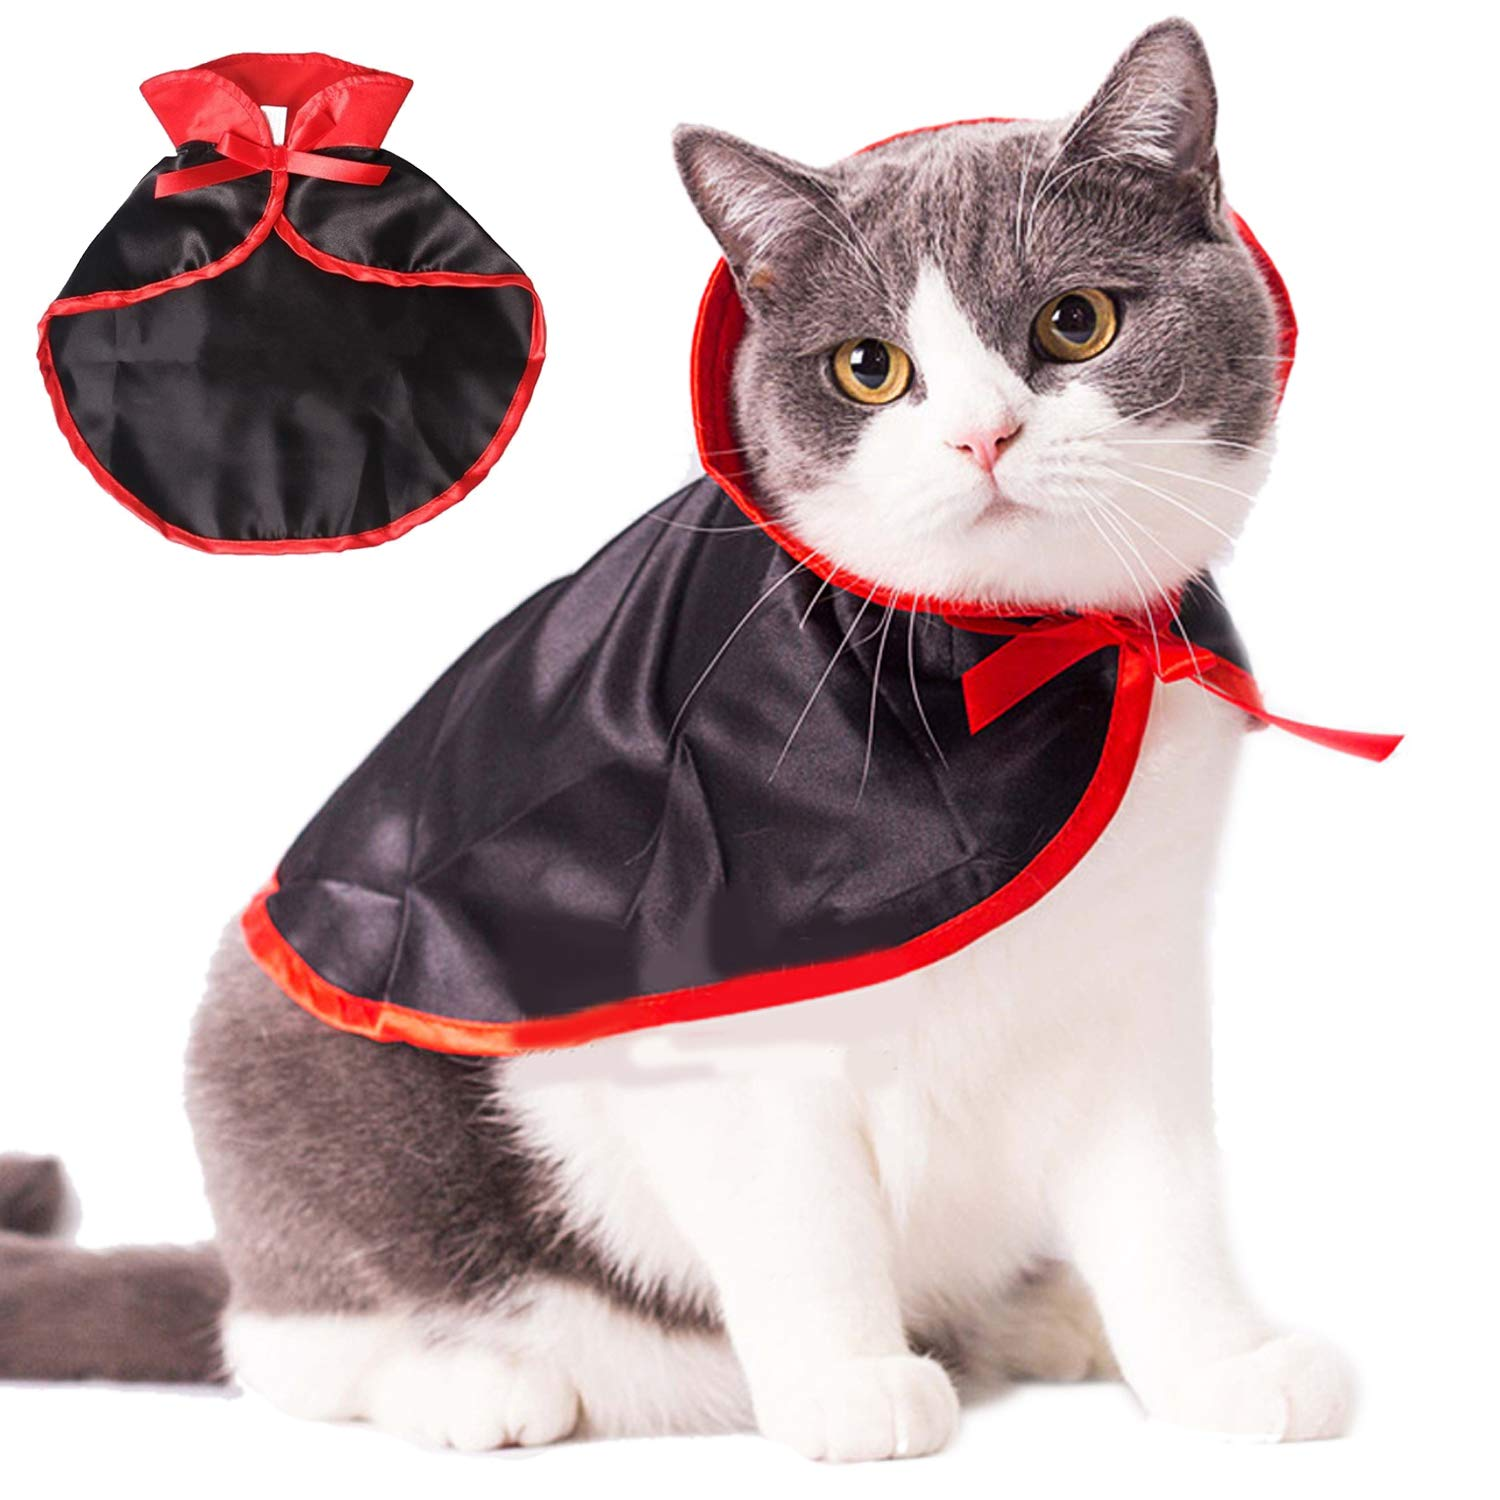 Legendog Cat Costume Halloween Bat Wings Pet Costumes Pet Apparel for Small  Dogs and Cats (Halloween Cape)